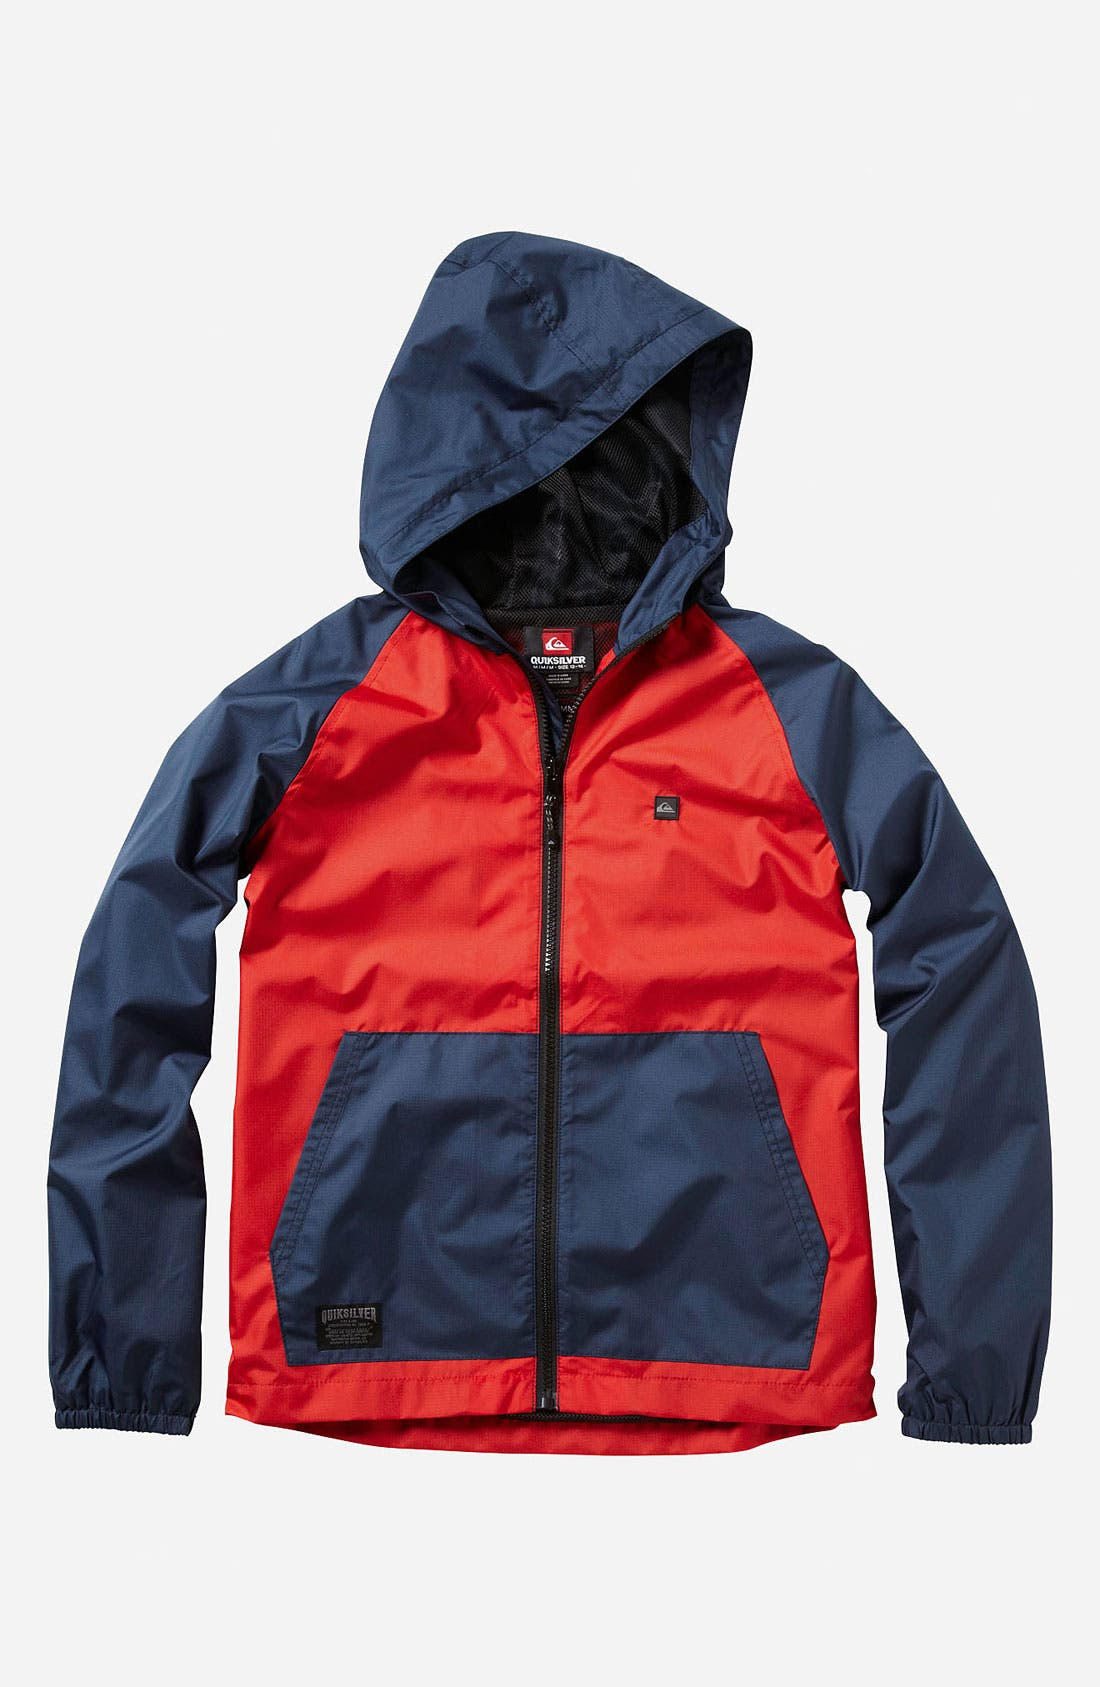 Main Image - Quiksilver 'Ward' Jacket (Big Boys)